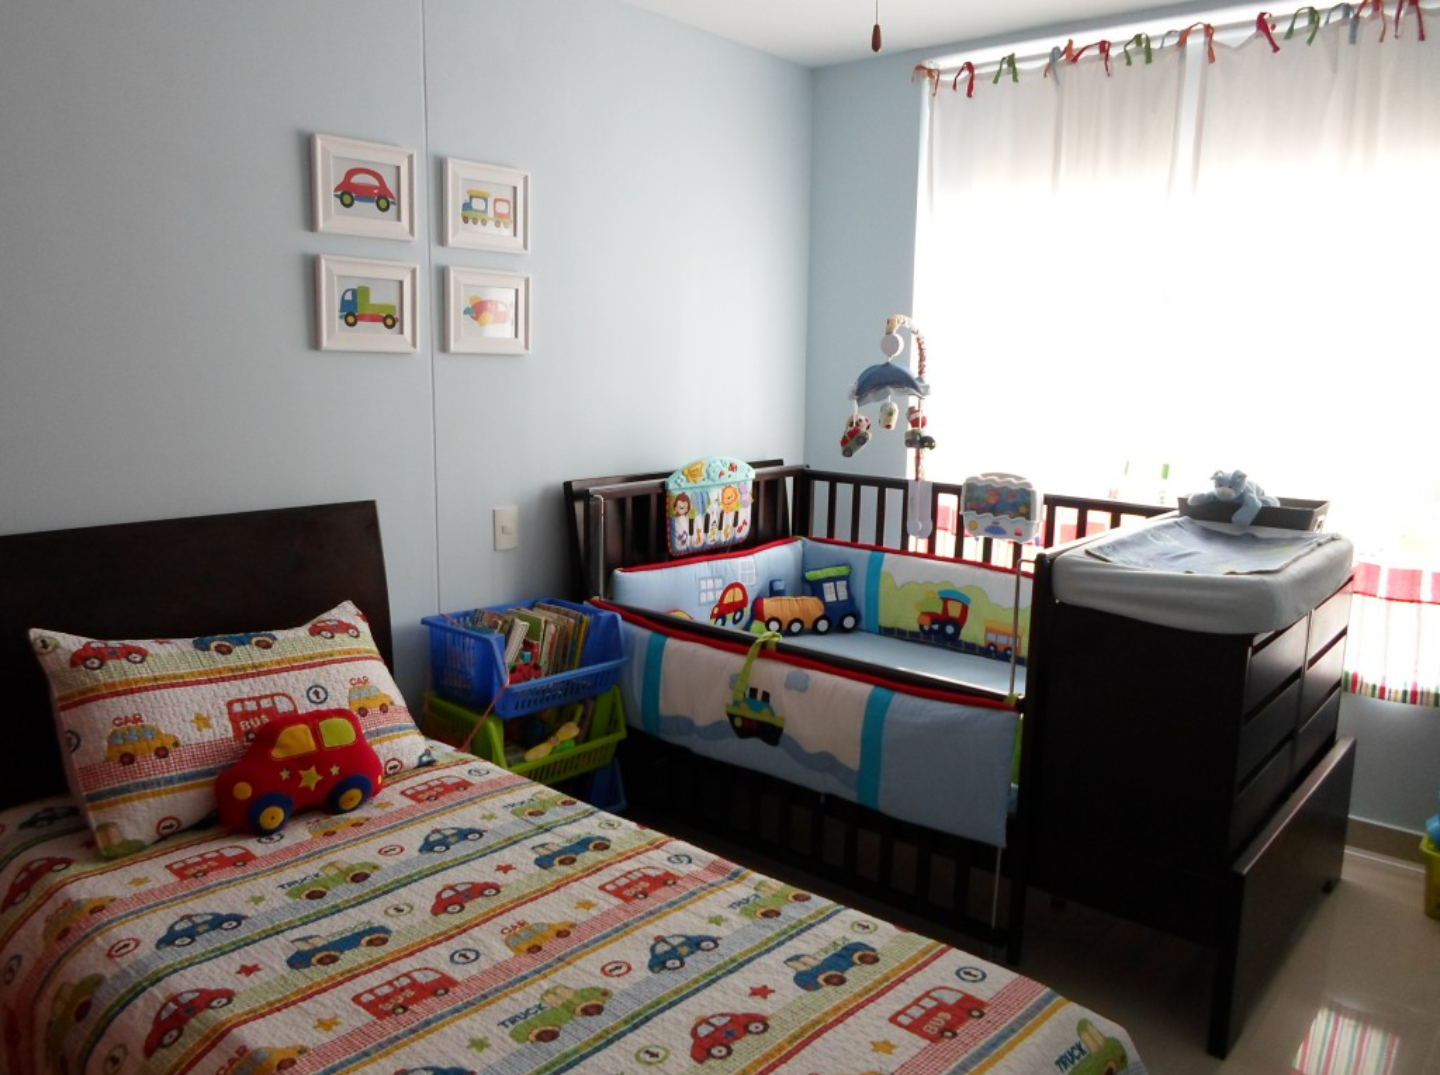 Perfect Shared Bedroom For Little Boys In A Small Space On A Budget Boy And Girl Shared Room Toddler Boy Room Decor Baby And Toddler Shared Room